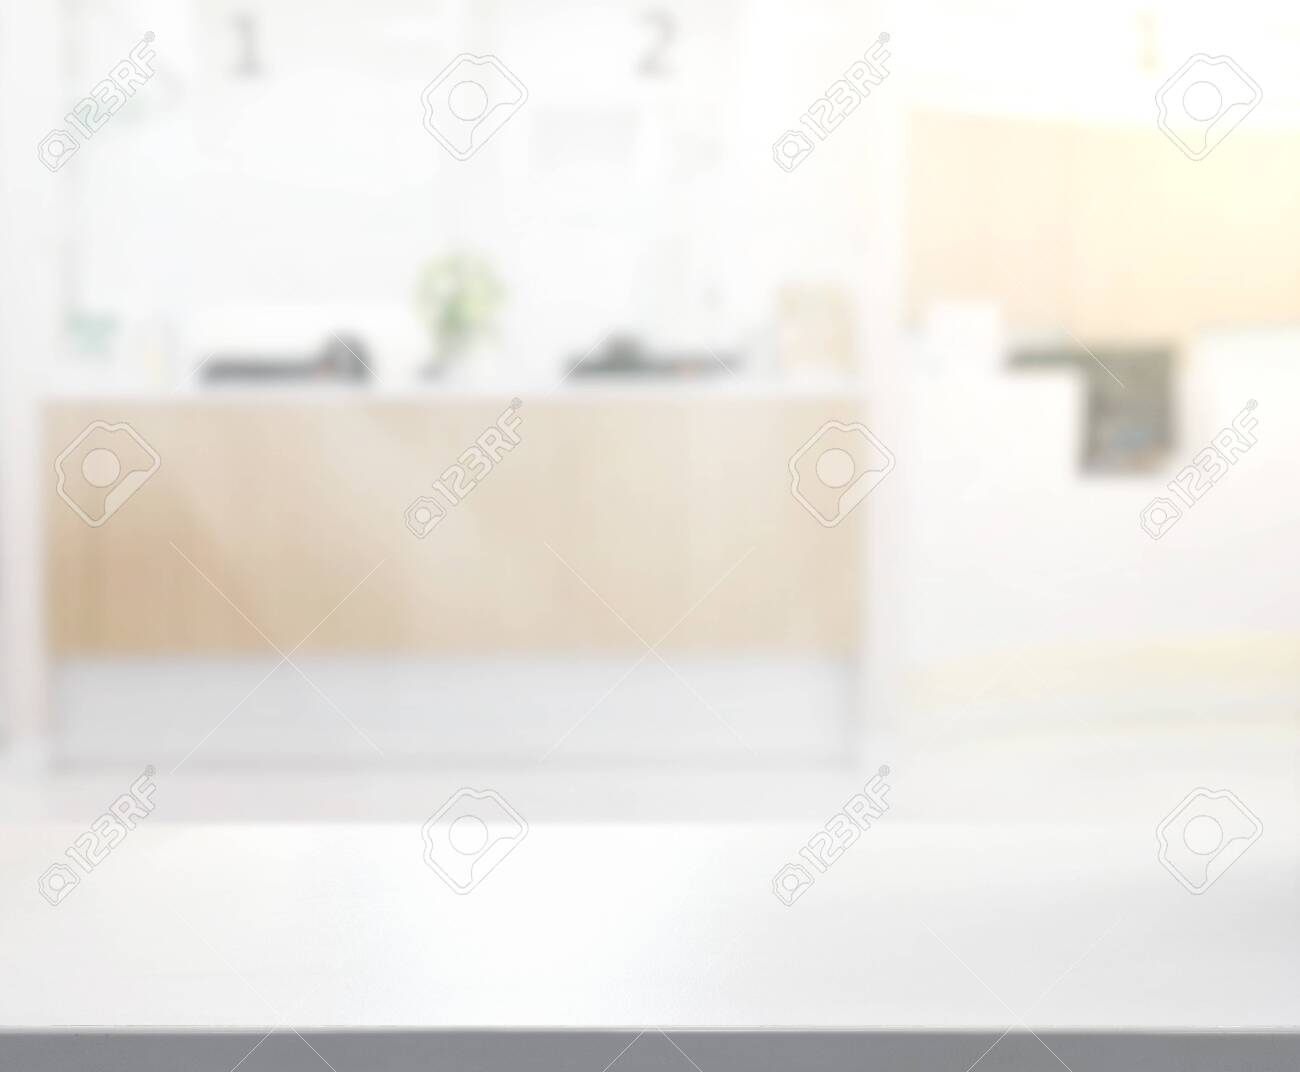 Table Top And Blur Office Of The Background - 135177654